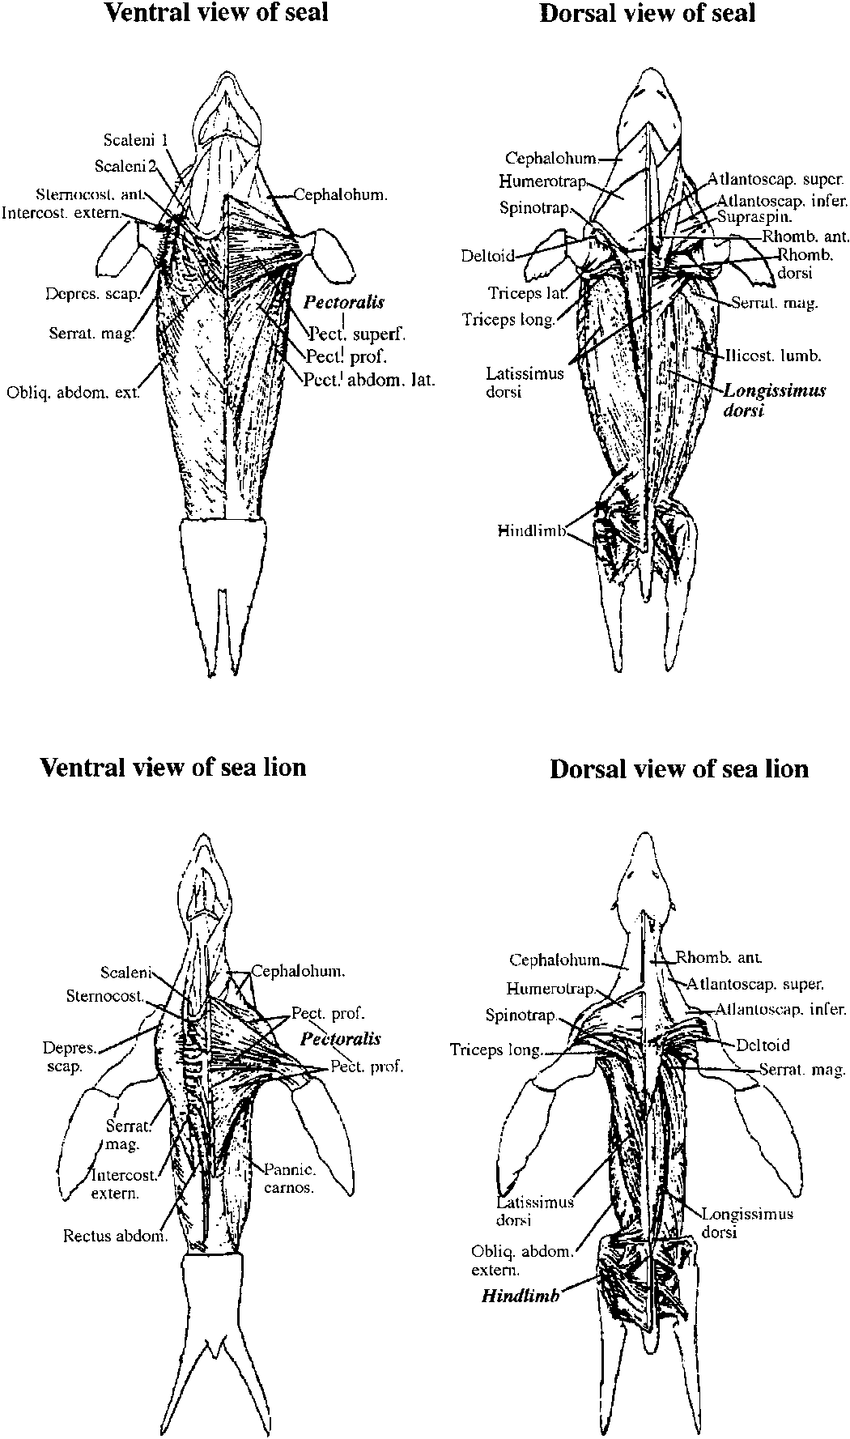 medium resolution of skeletal muscle anatomy of seals and sea lions biopsy samples of organs diagram to label lion organs diagram